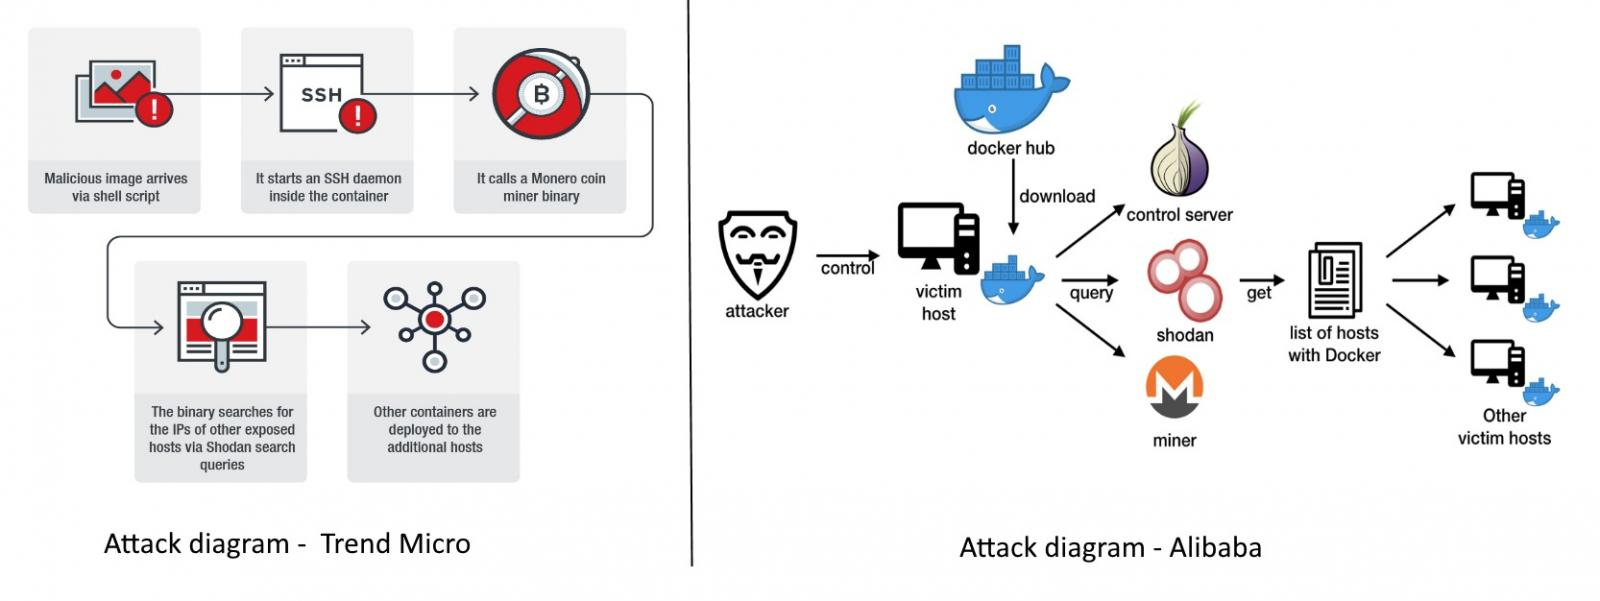 Compromised Docker Hosts Use Shodan to Infect More Victims